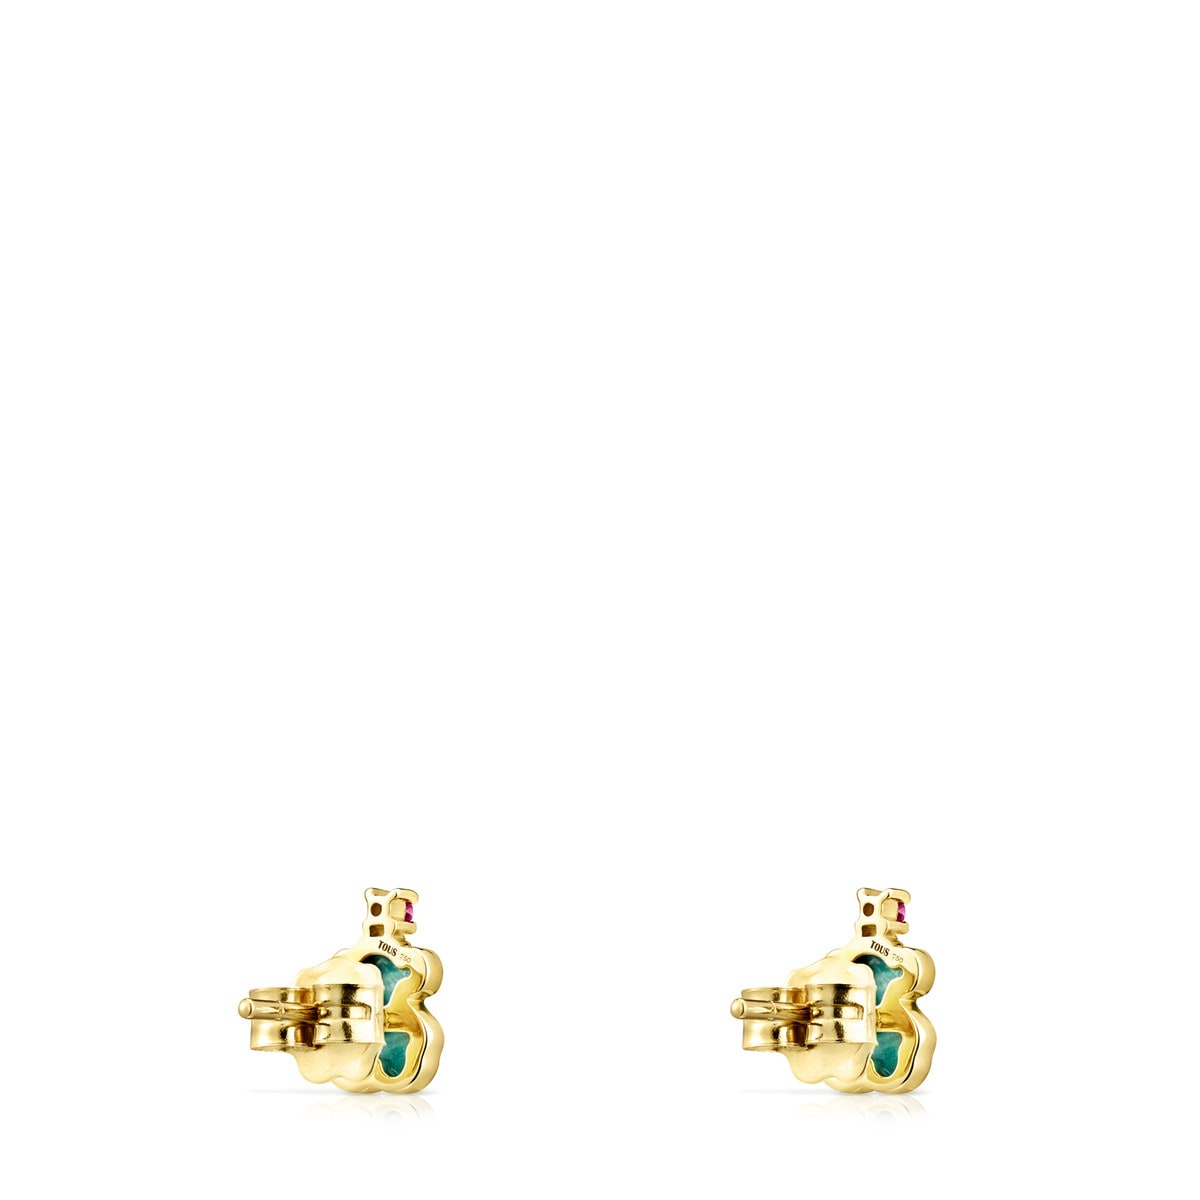 d4289bbf087 Gold TOUS Color Earrings with Amazonite and Ruby - Tous Site US